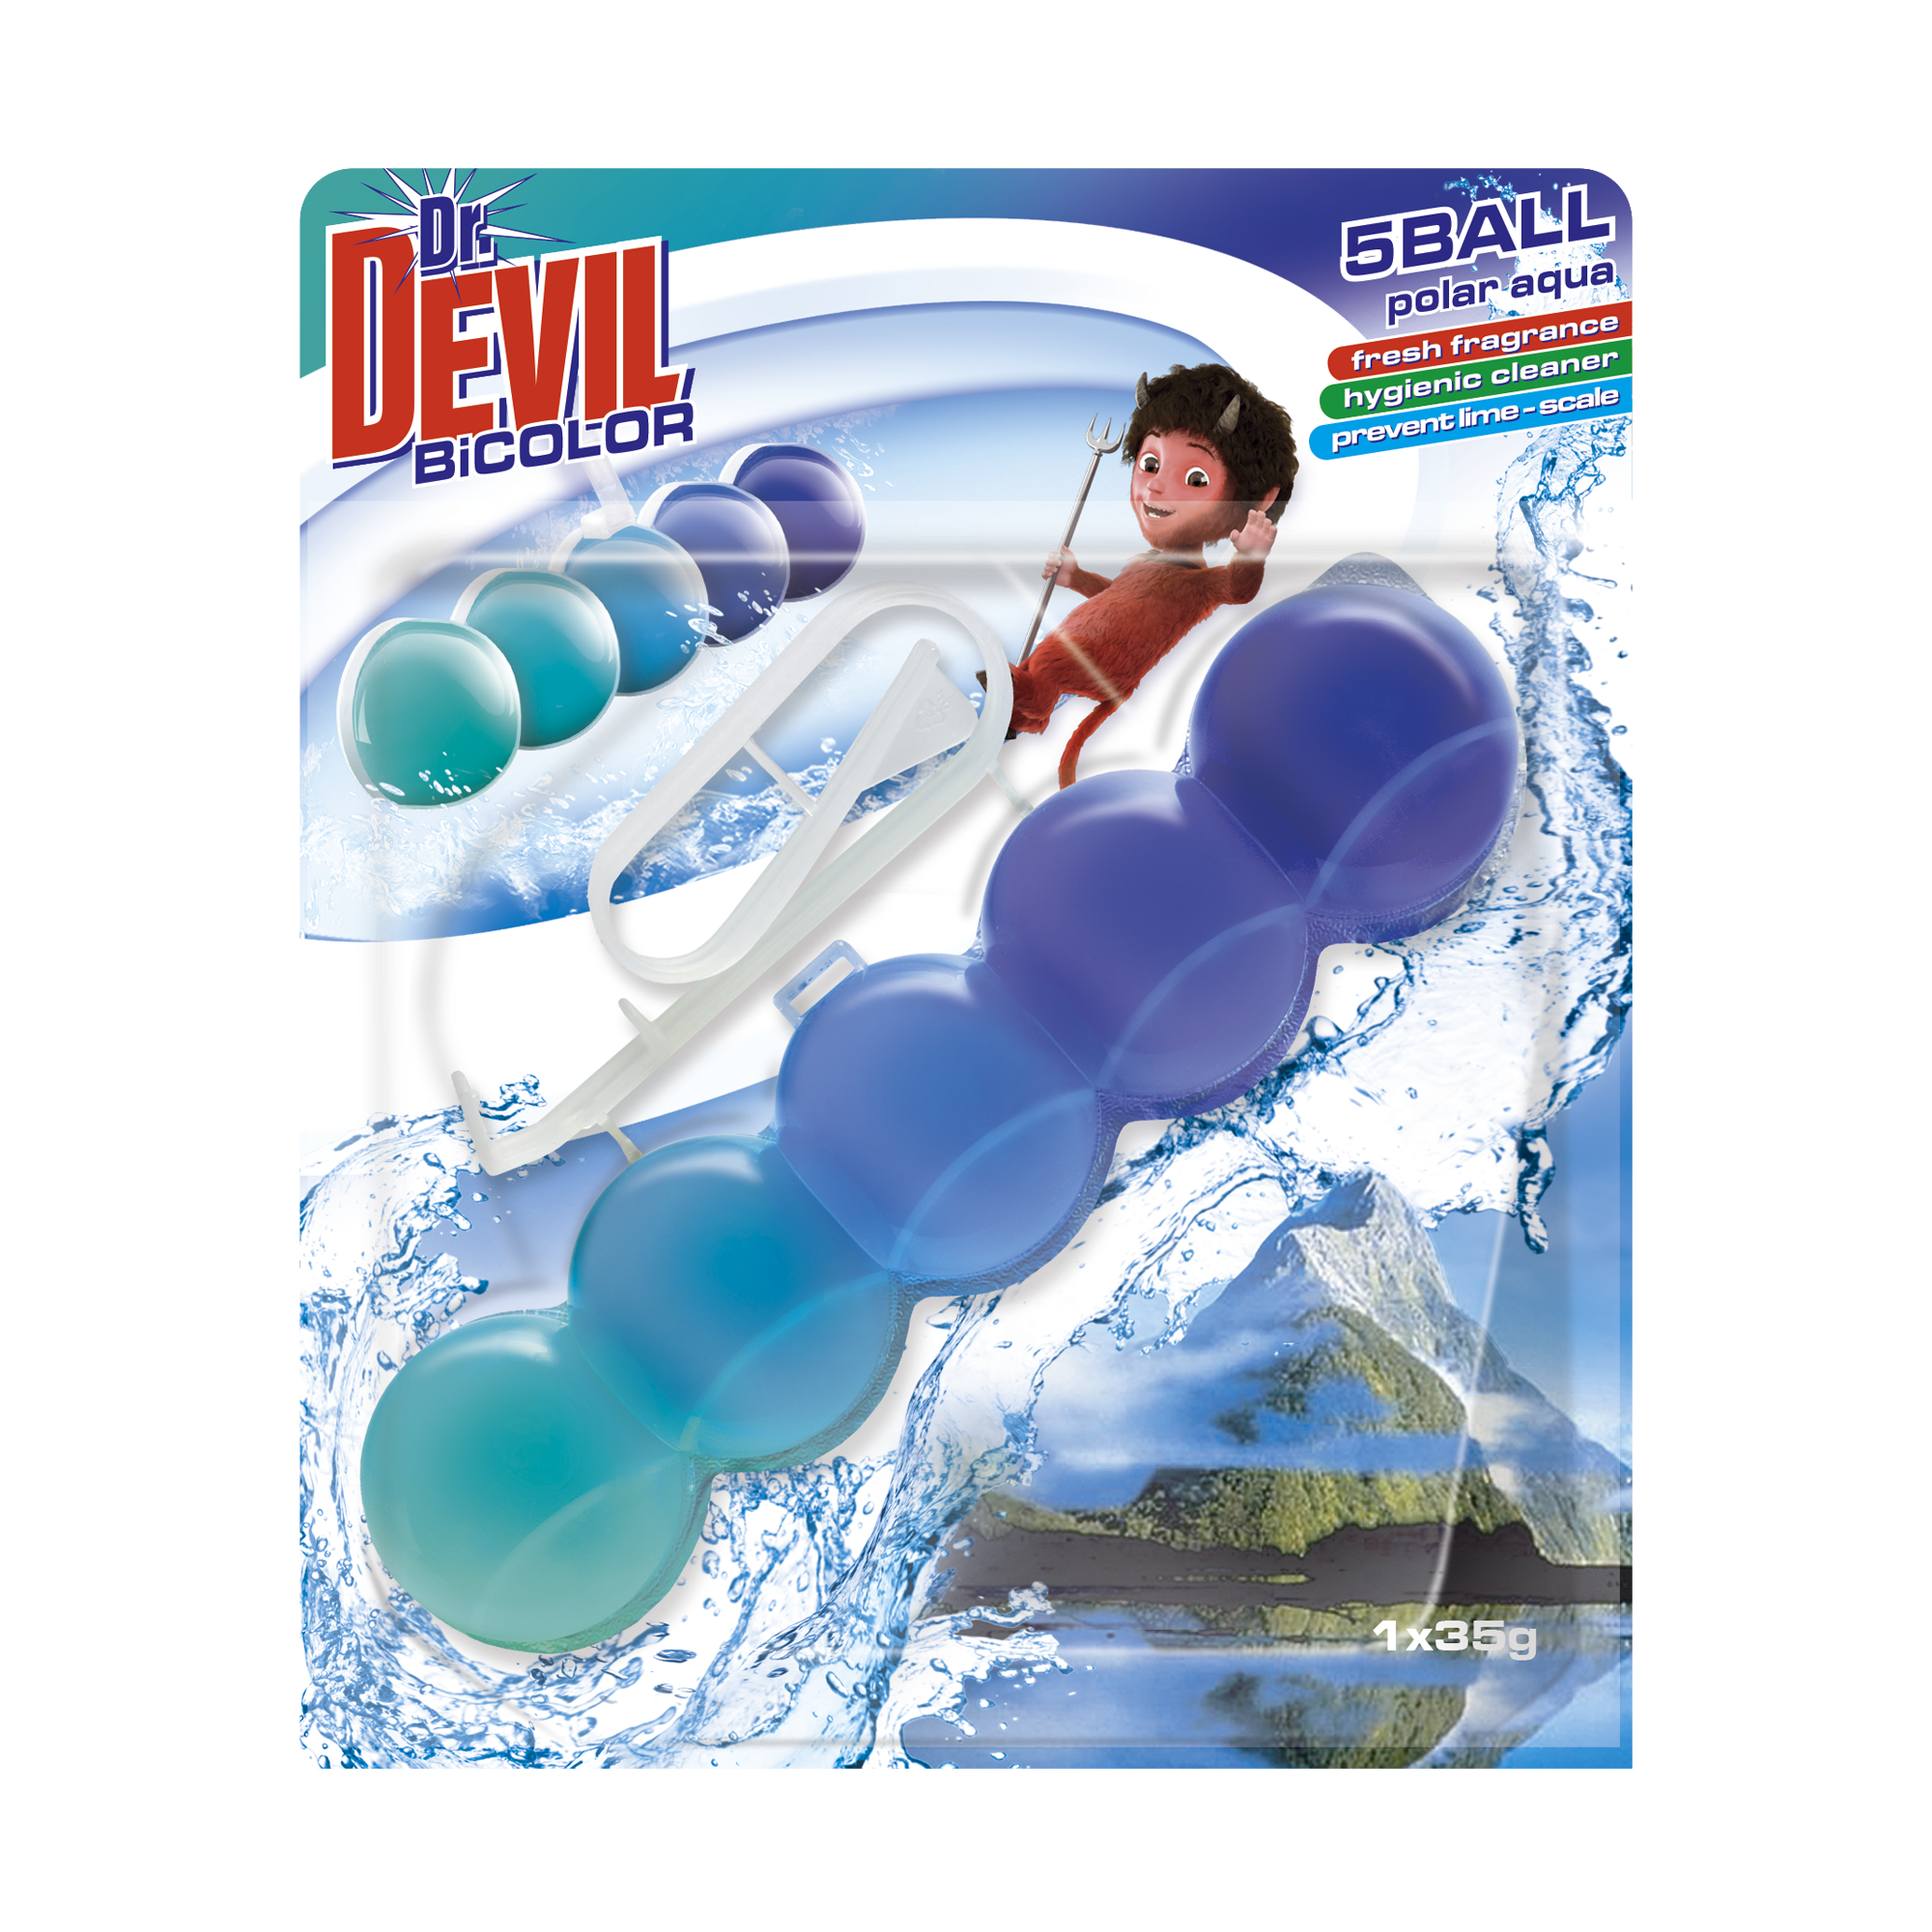 Dr. Devil WC BiCOLOR 5BALL Polar Aqua